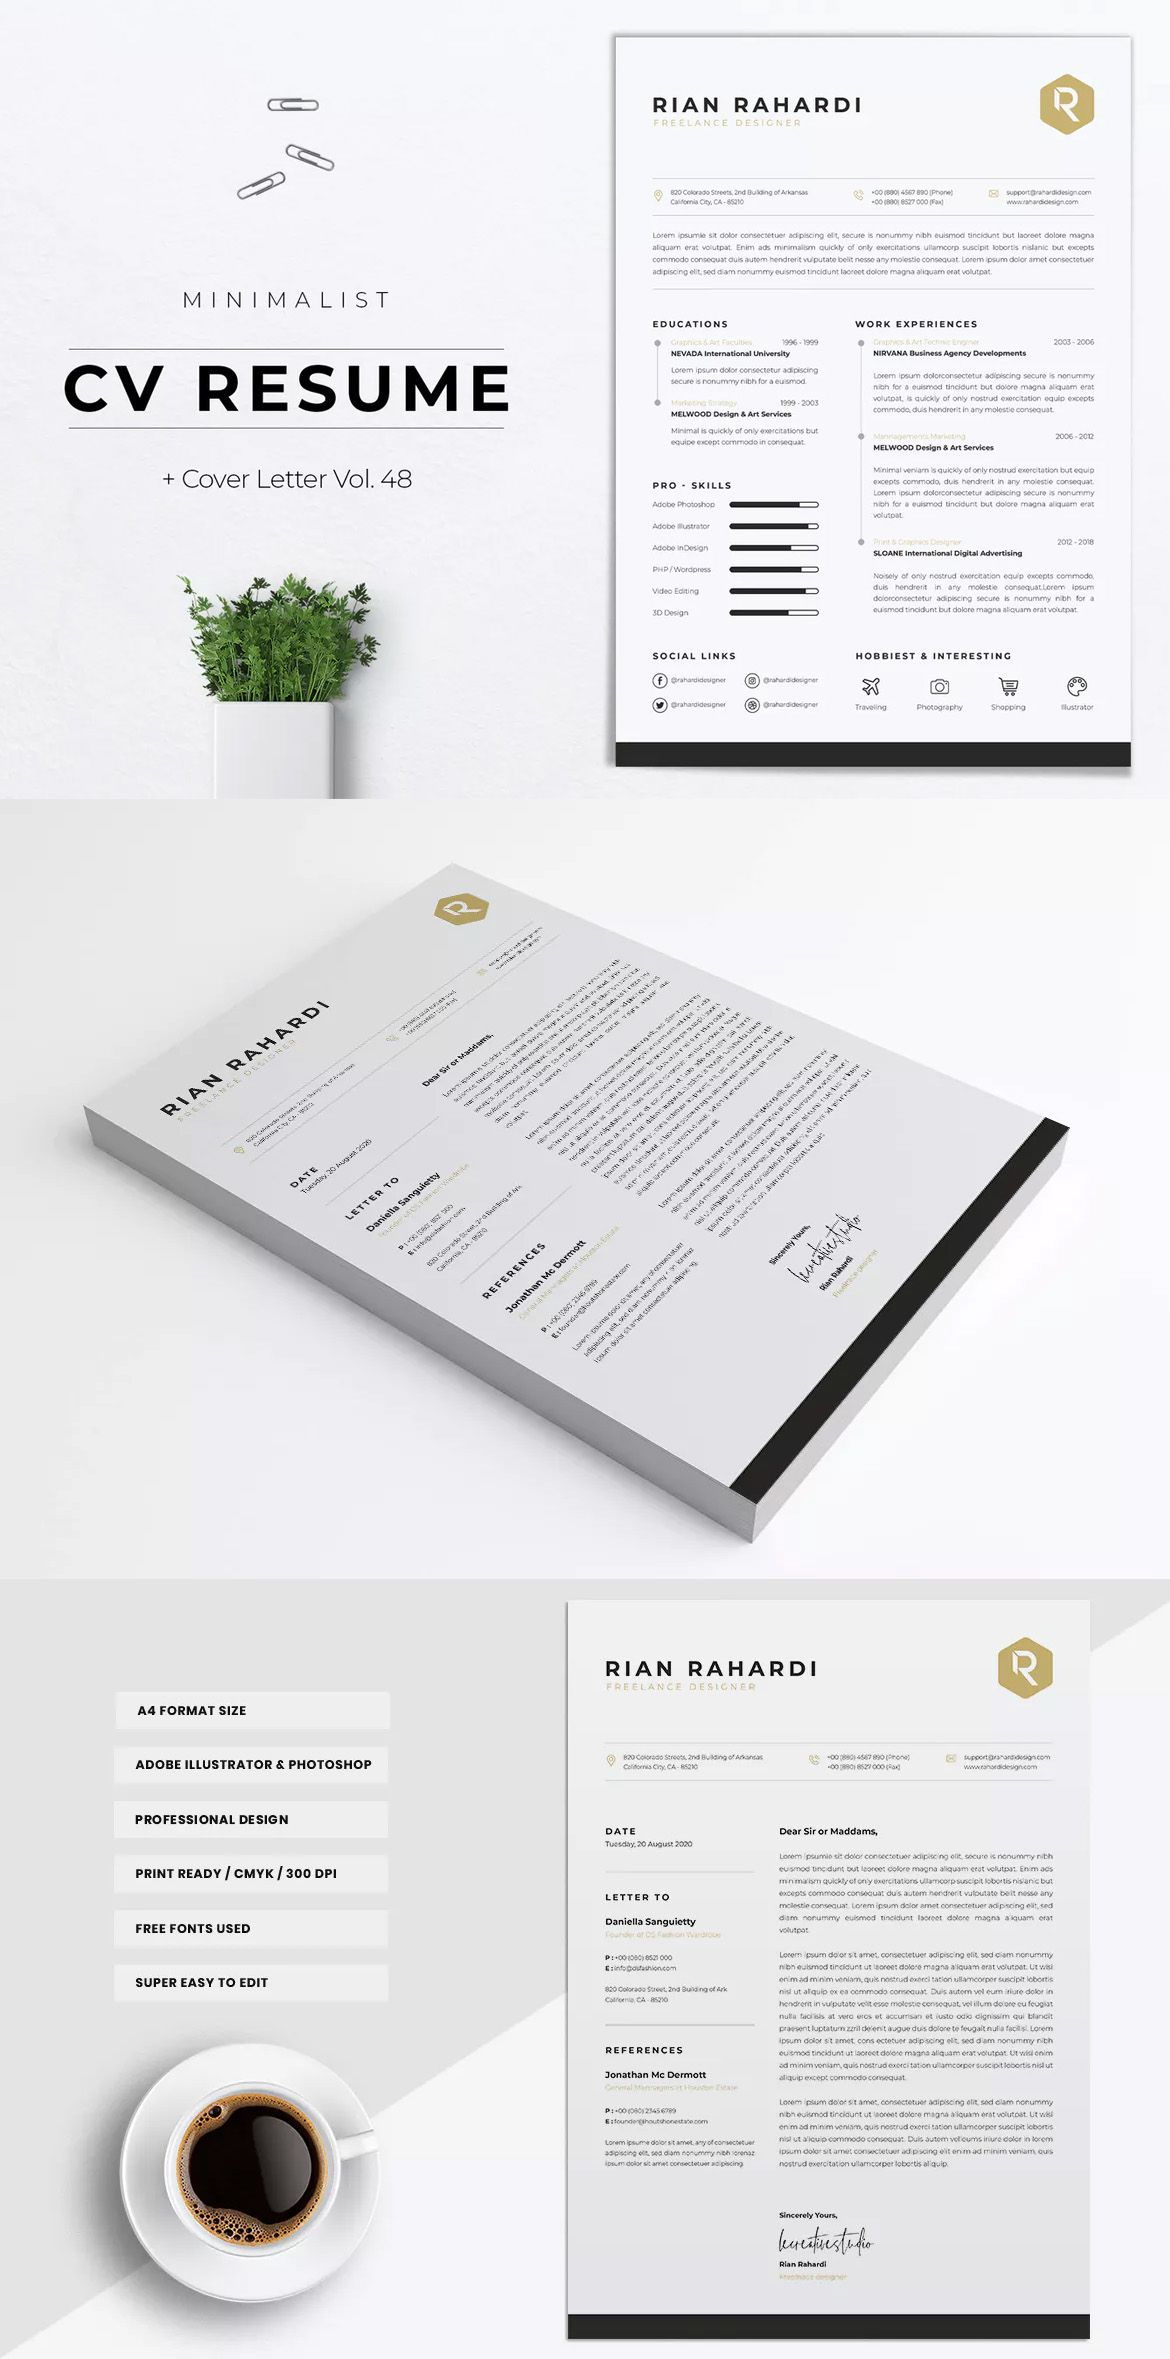 Minimalist CV Resume Template AI, EPS, PSD A4 format